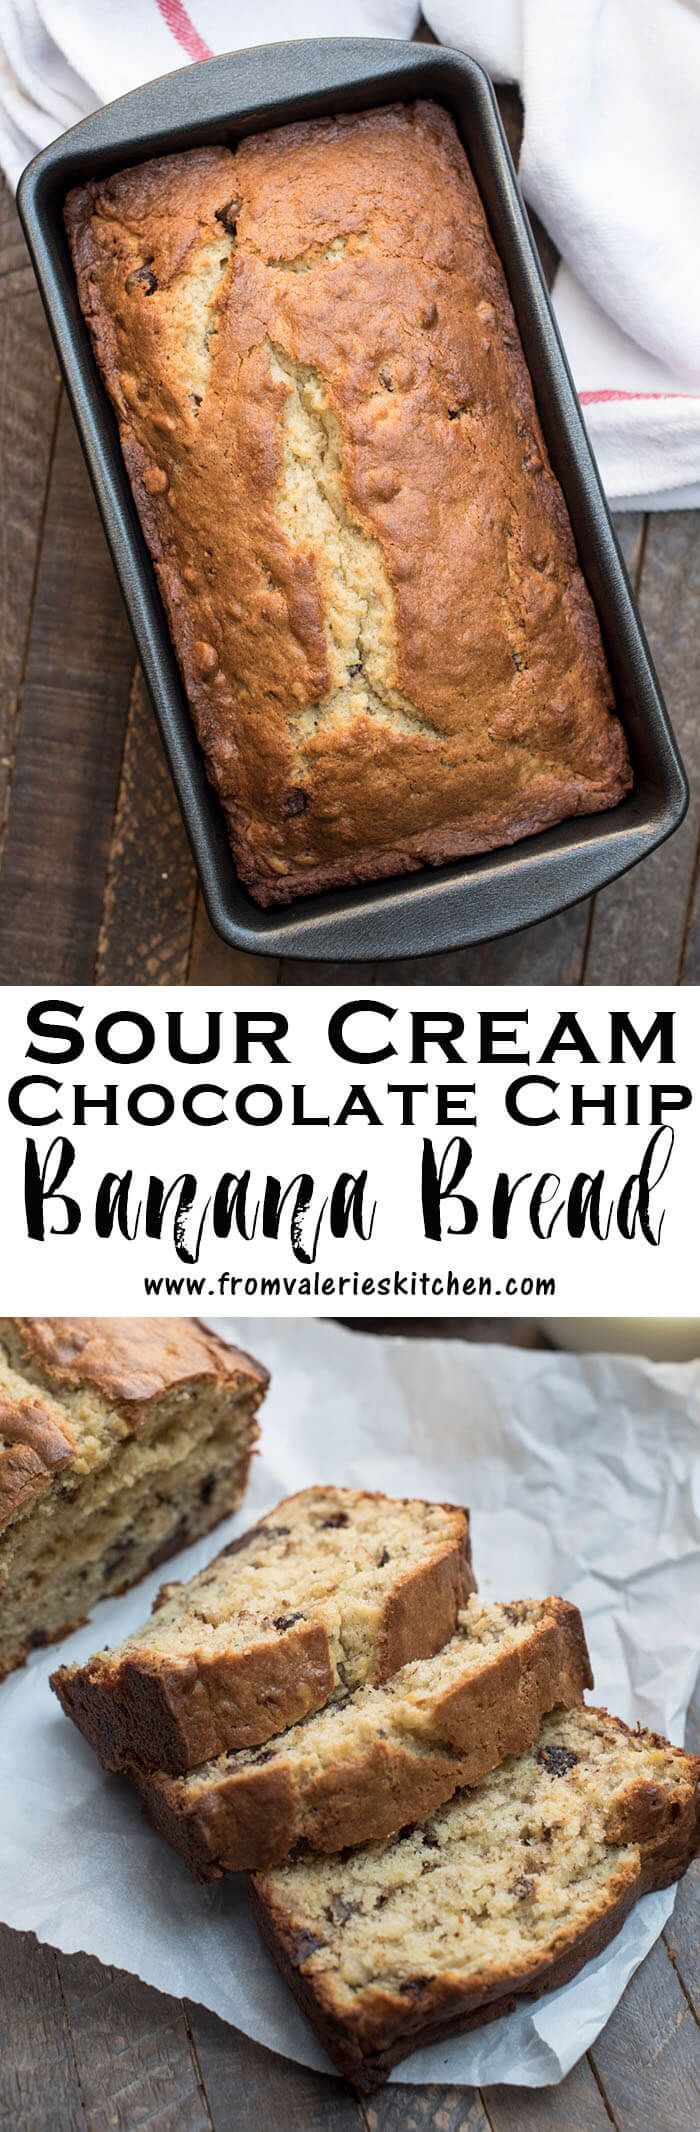 Sour cream adds great texture and flavor to this beautiful, golden brown loaf of Sour Cream Chocolate Chip Banana Bread. Delicious!